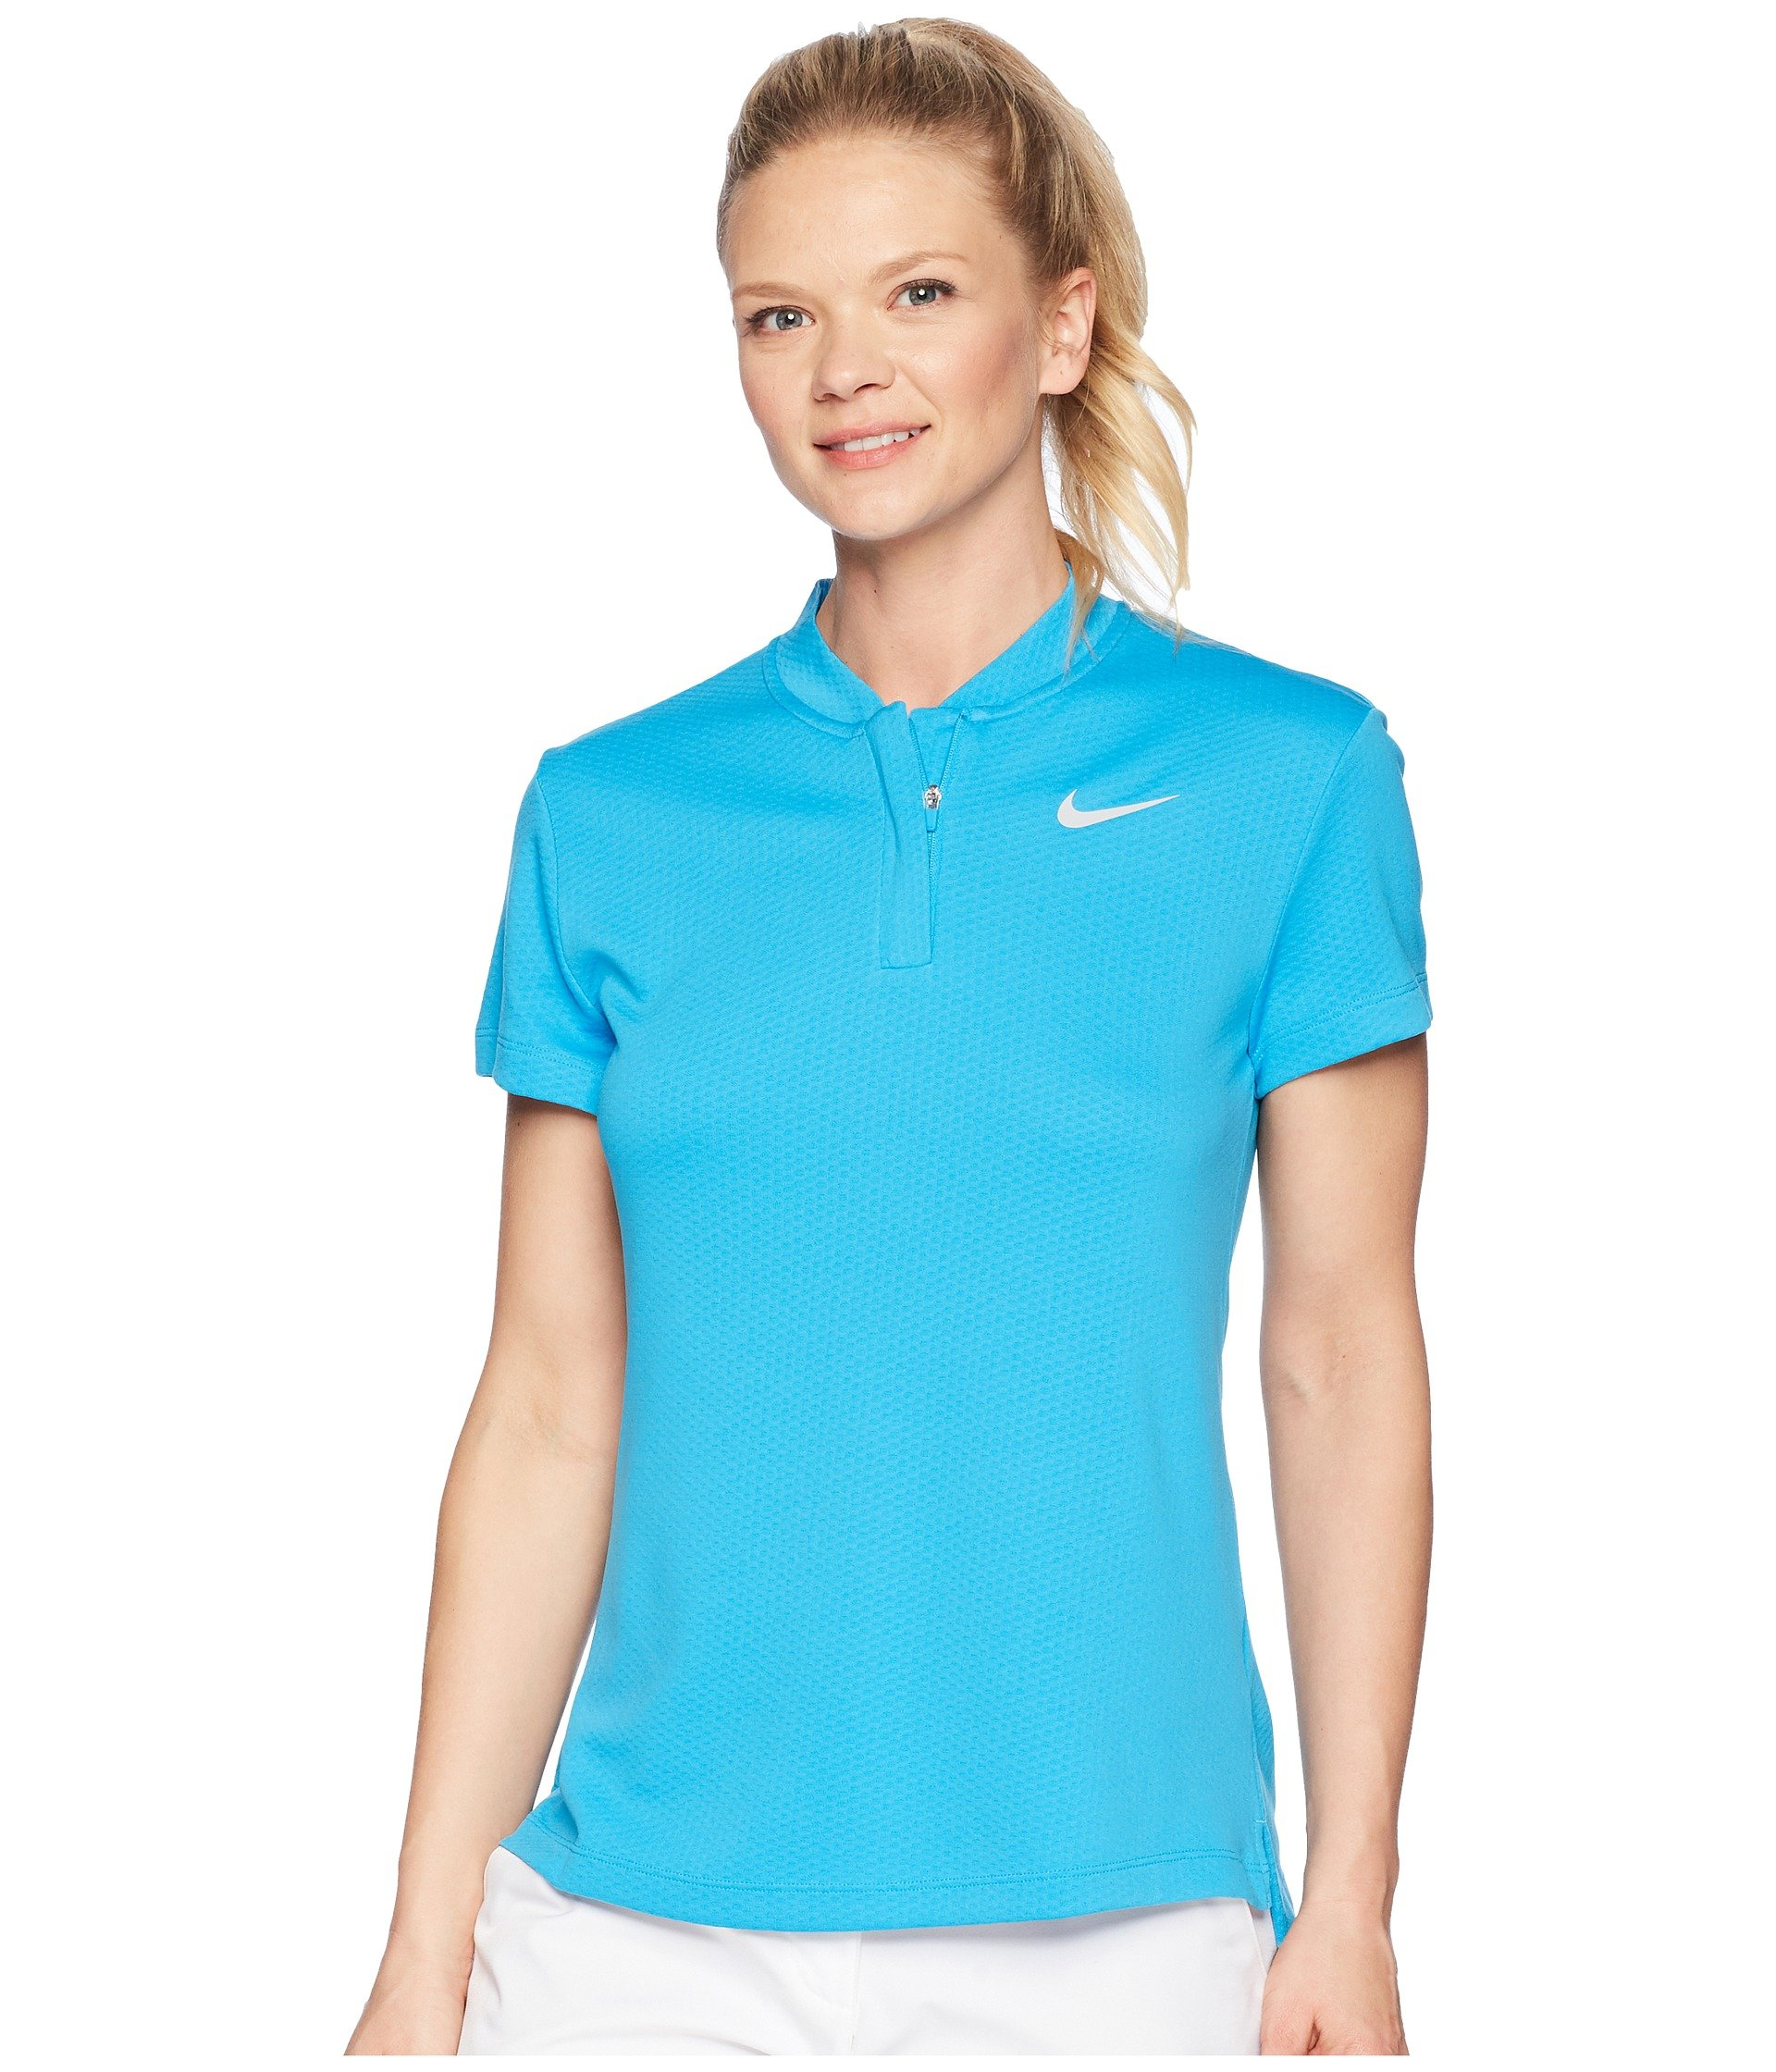 Nike Dri Fit Shortsleeve Blade Collar LC Golf Polo 2018 Women Equator Blue/Flat Silver X-Small